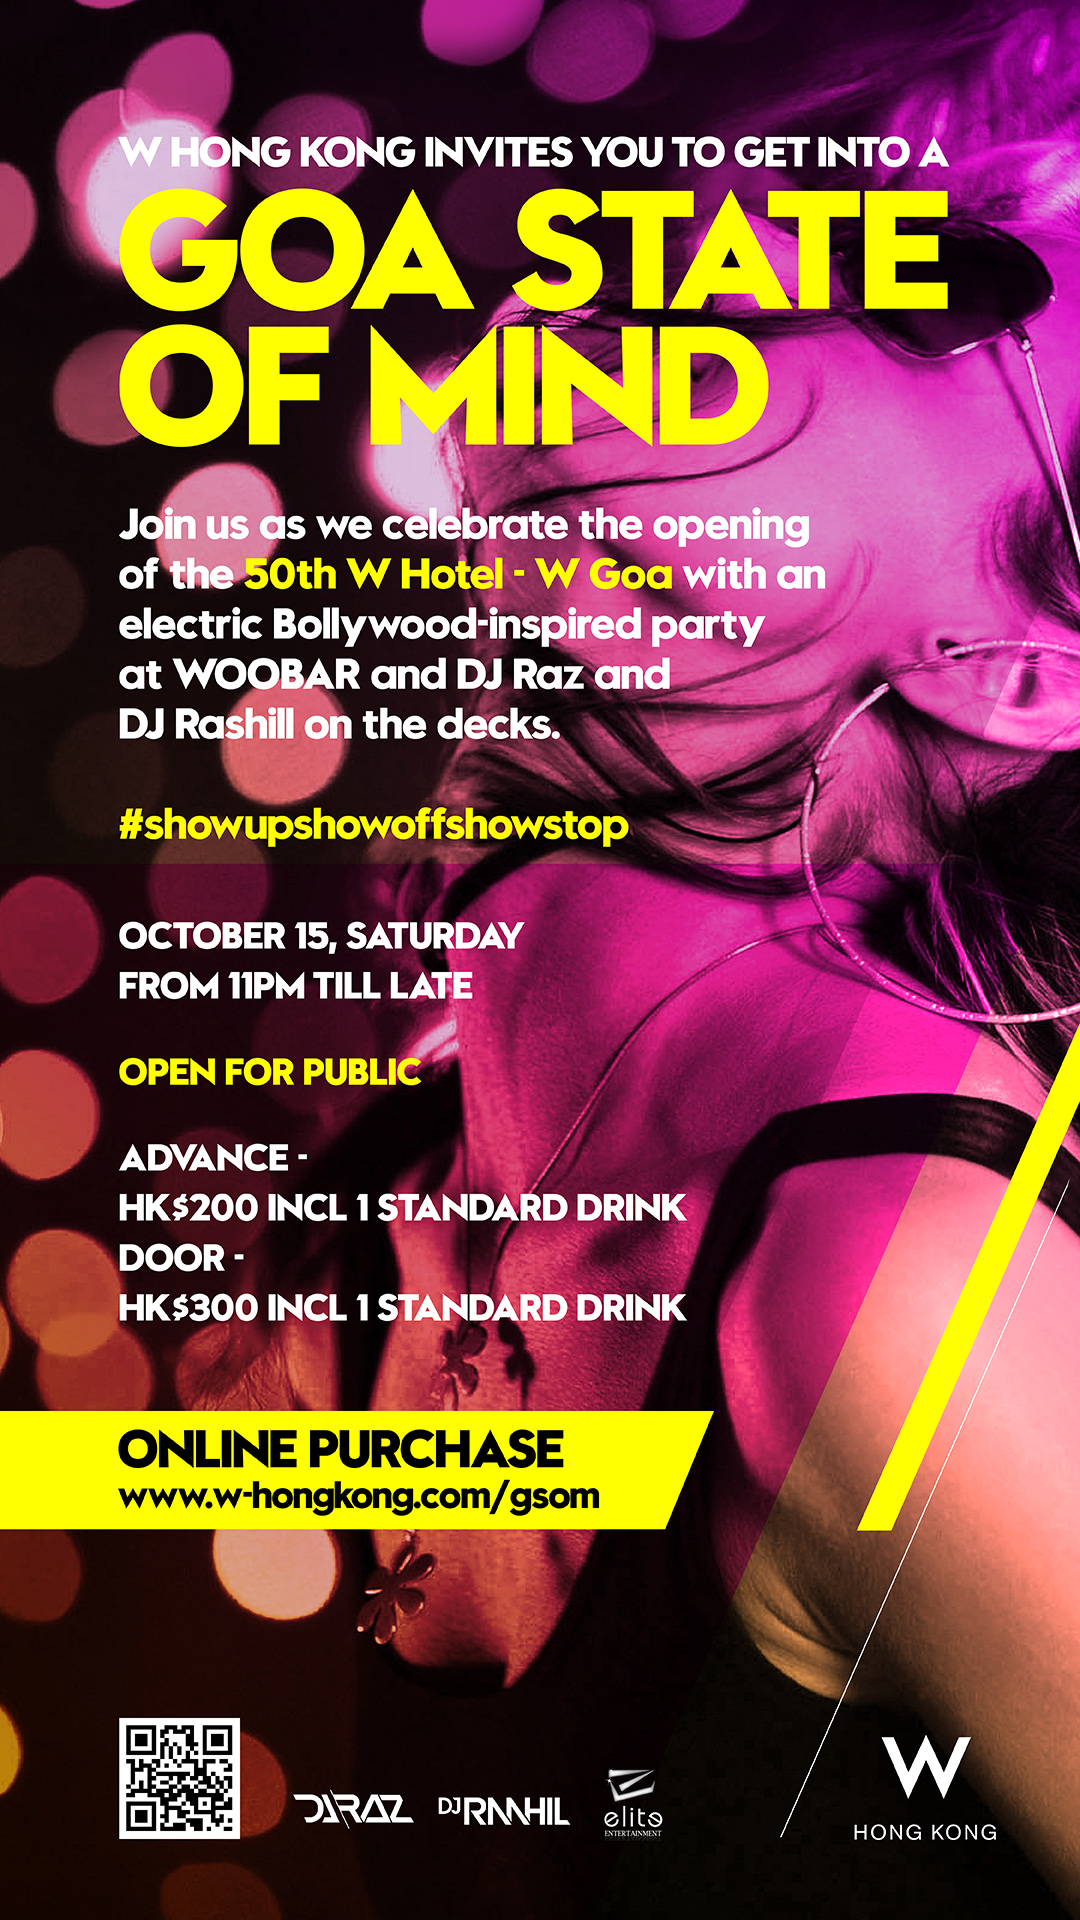 GOA STATE OF MIND BOLLYWOOD PARTY Tickets, Oct 15, 2016 | Ticketflap